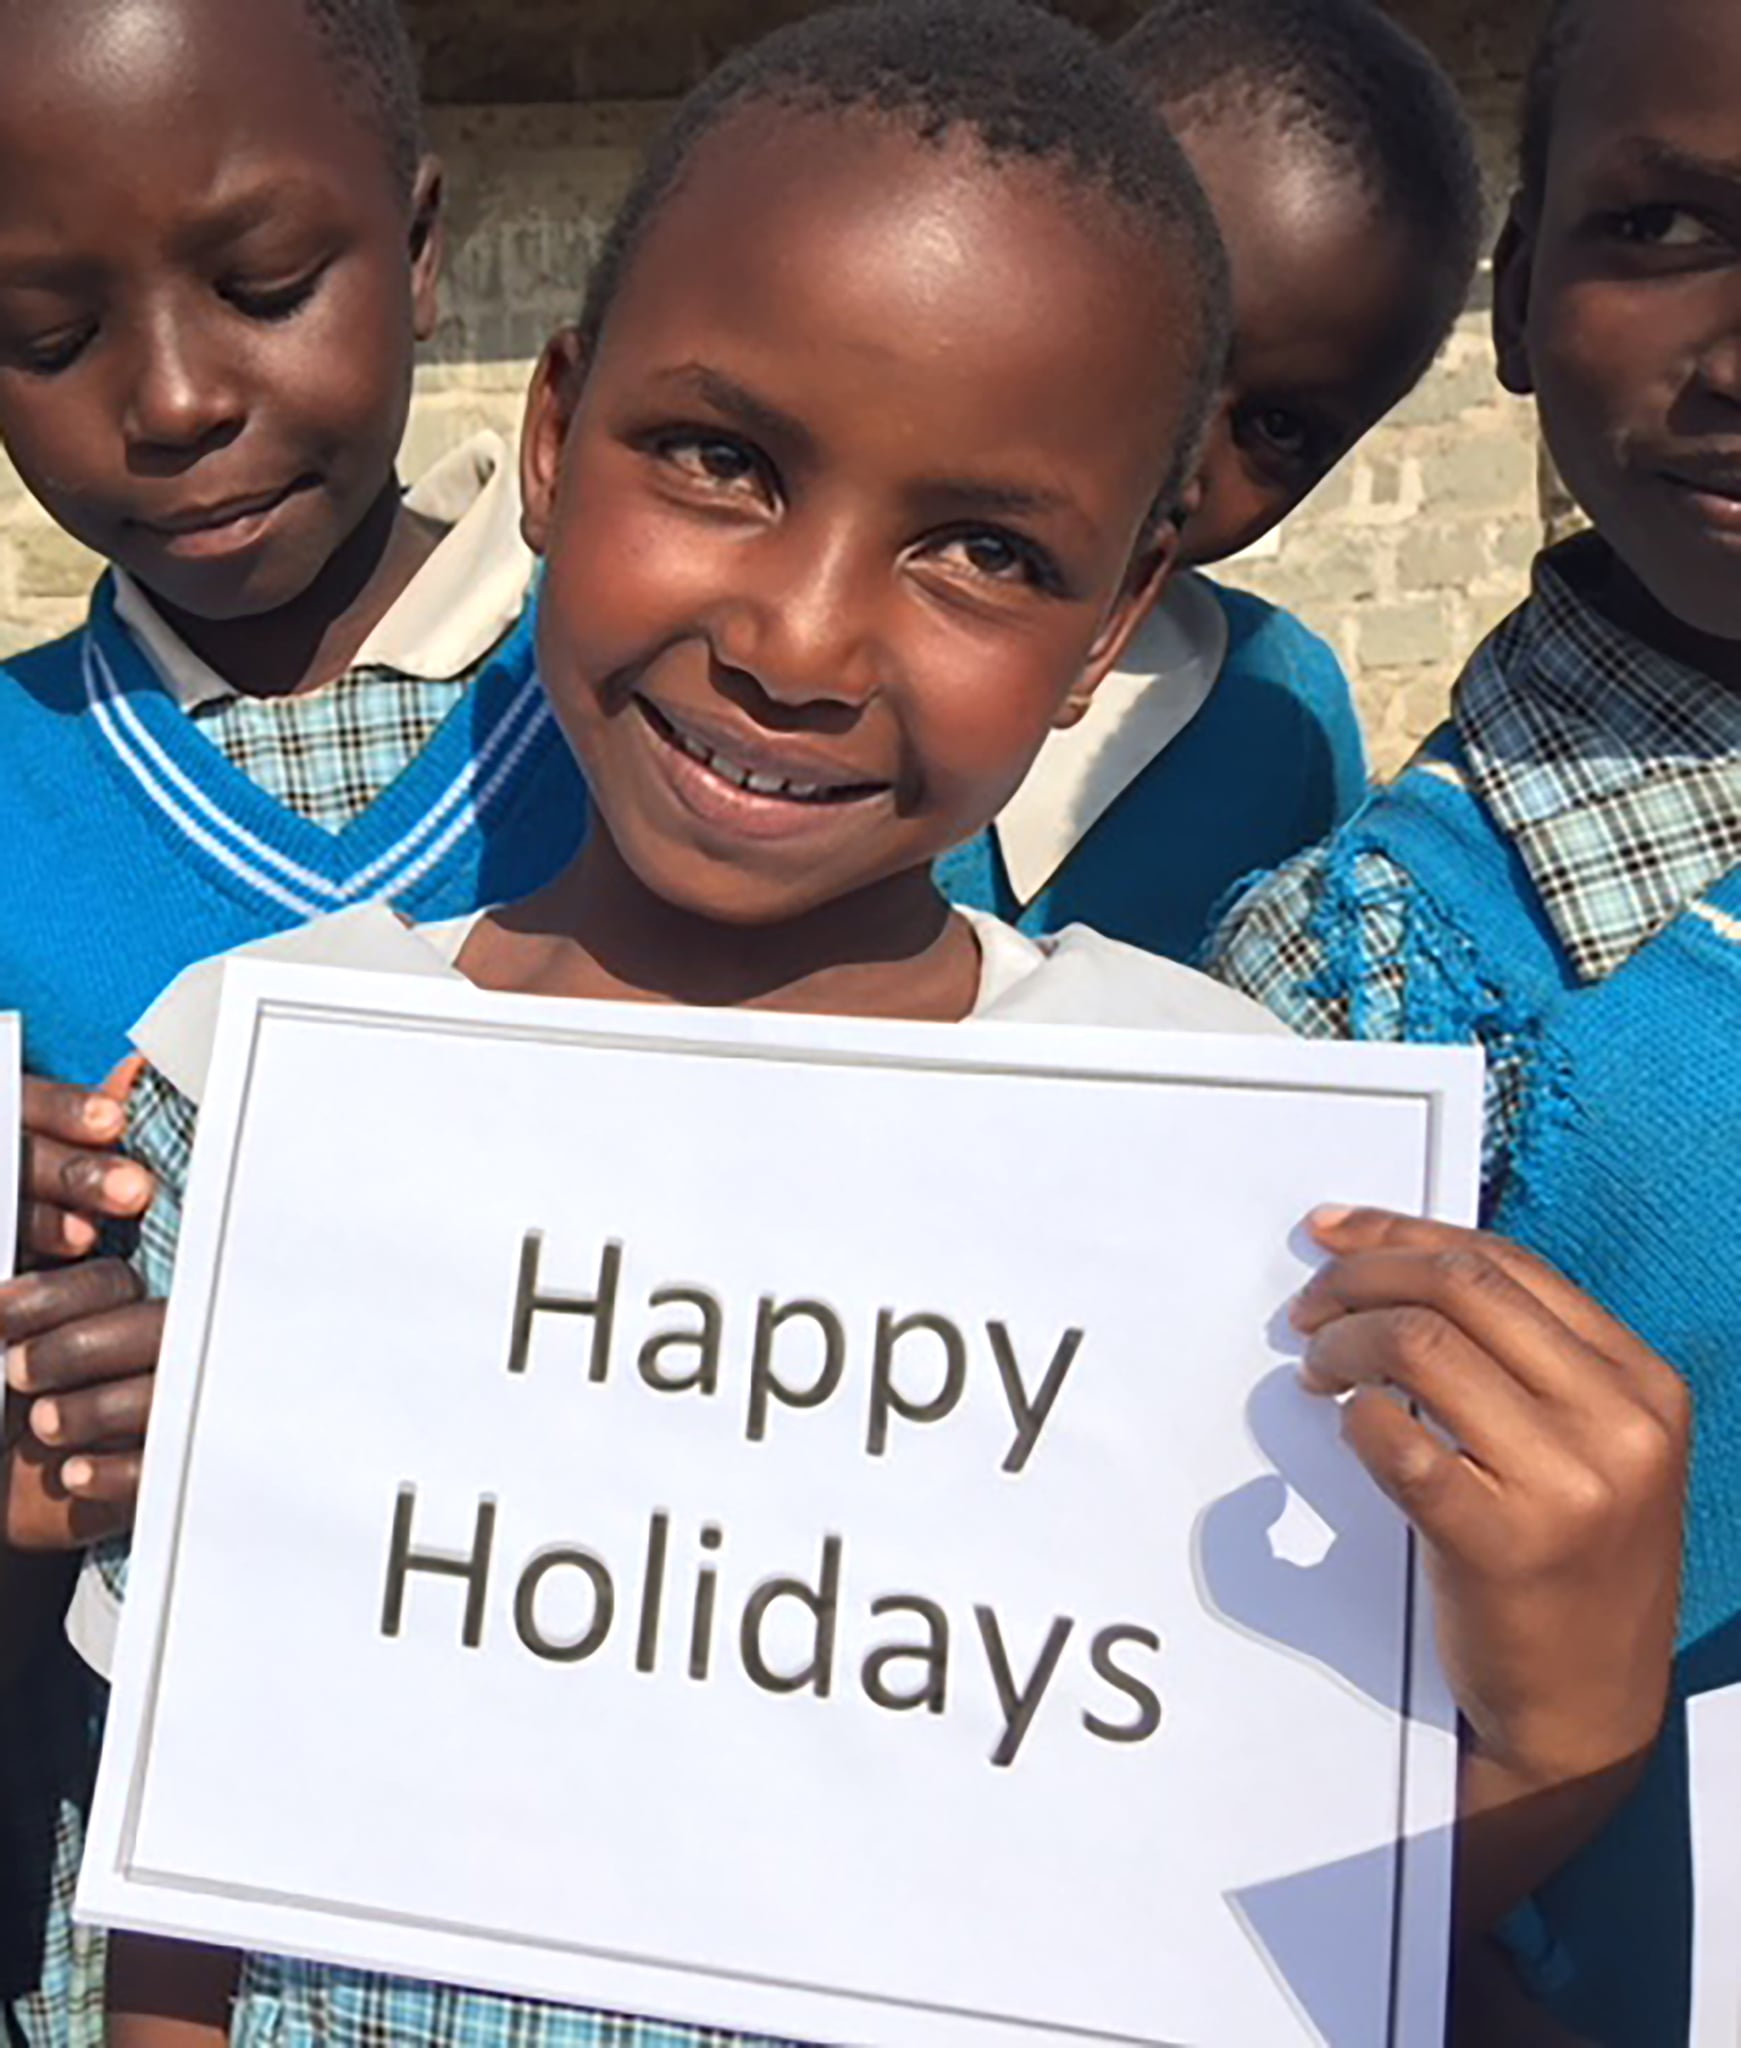 With much love from our precious student, Michelle Wangechi and all of those we humbly serve through Matanya's Hope.